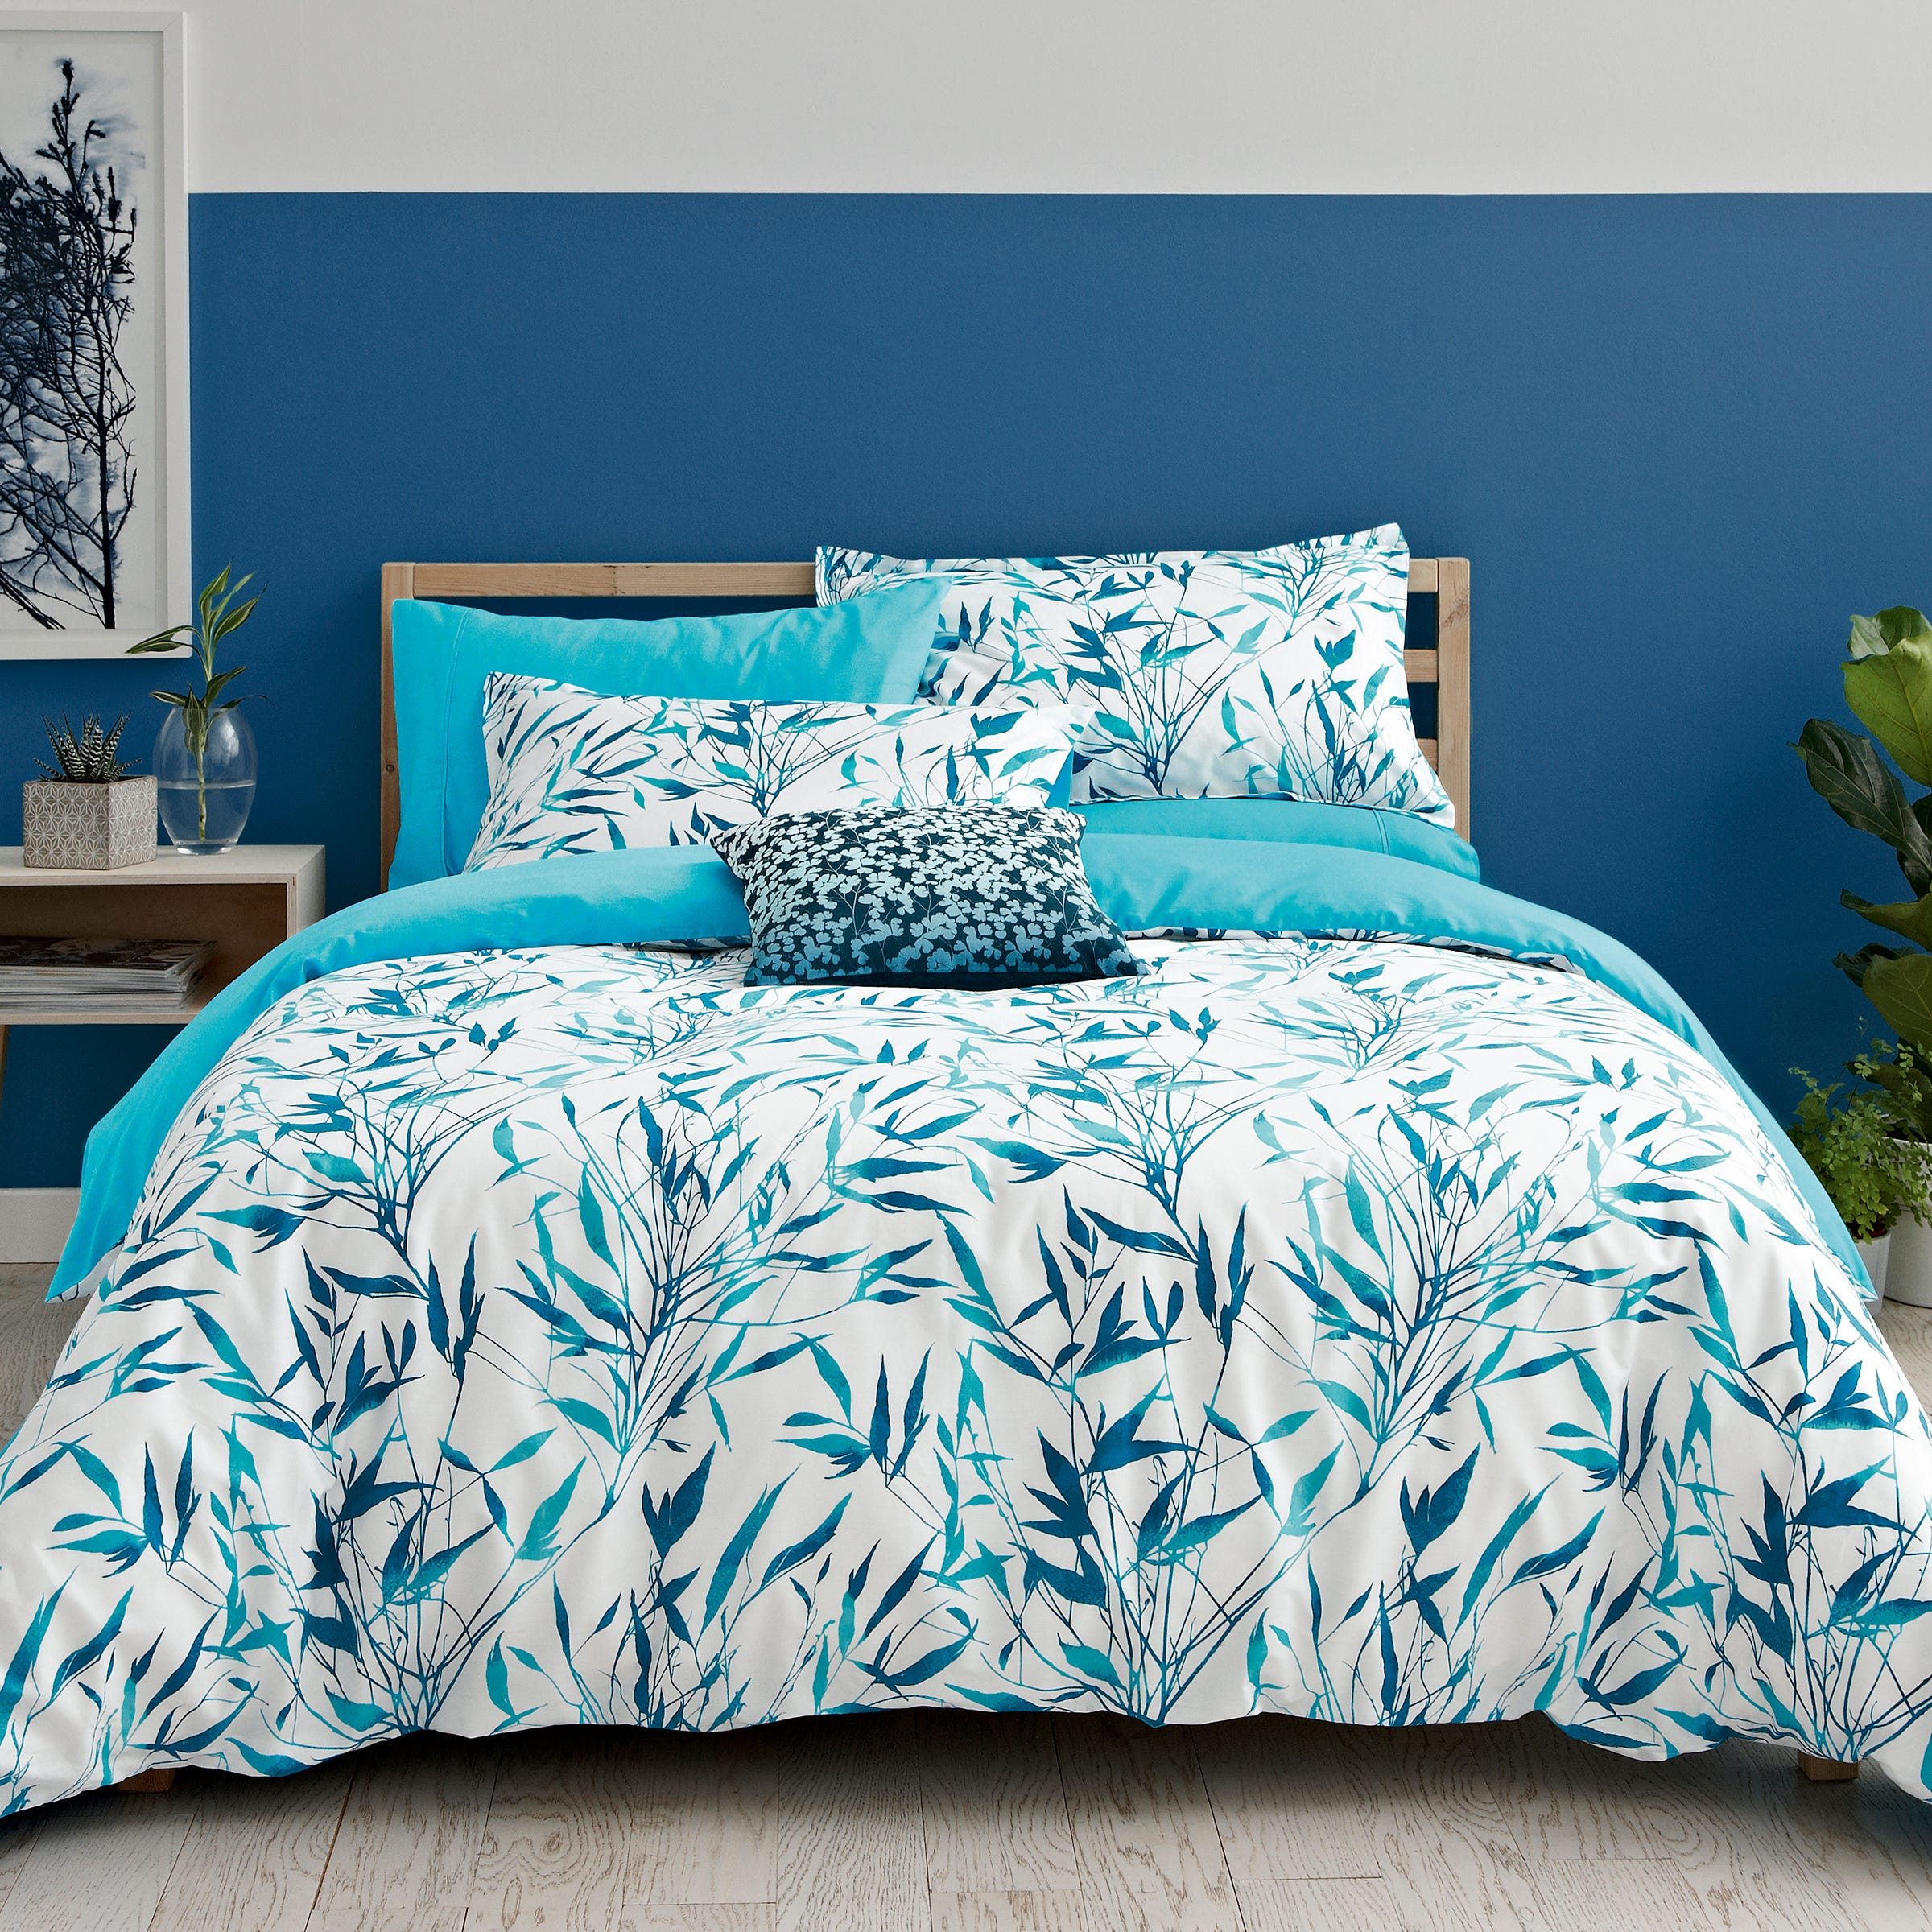 Clarissa Hulse Bedding Bamboo Double Duvet Cover Turquoise